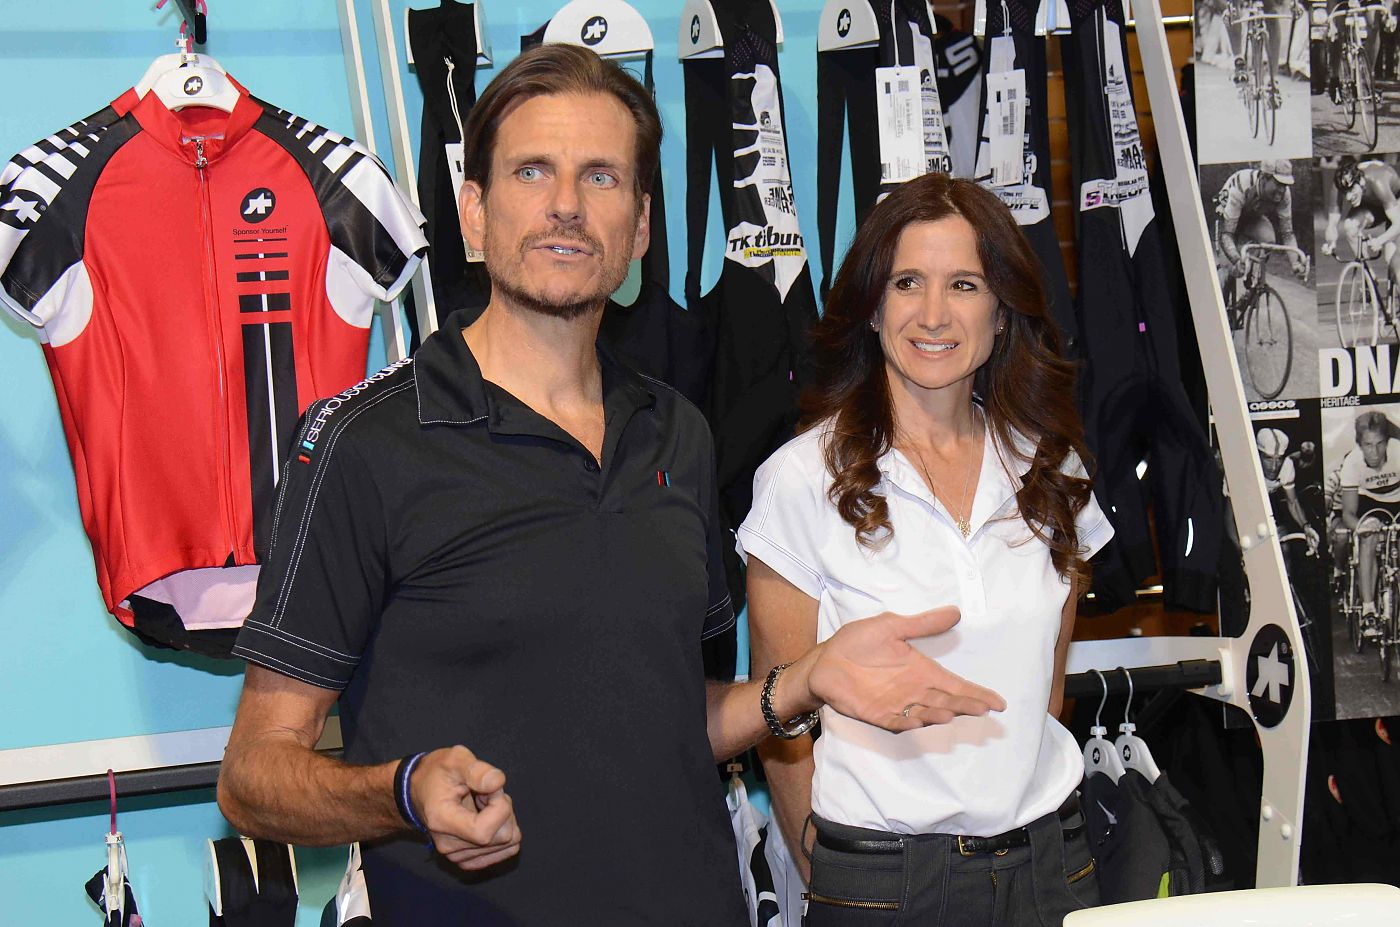 Serious cycling owners scott and jennifer johnson are passionate about